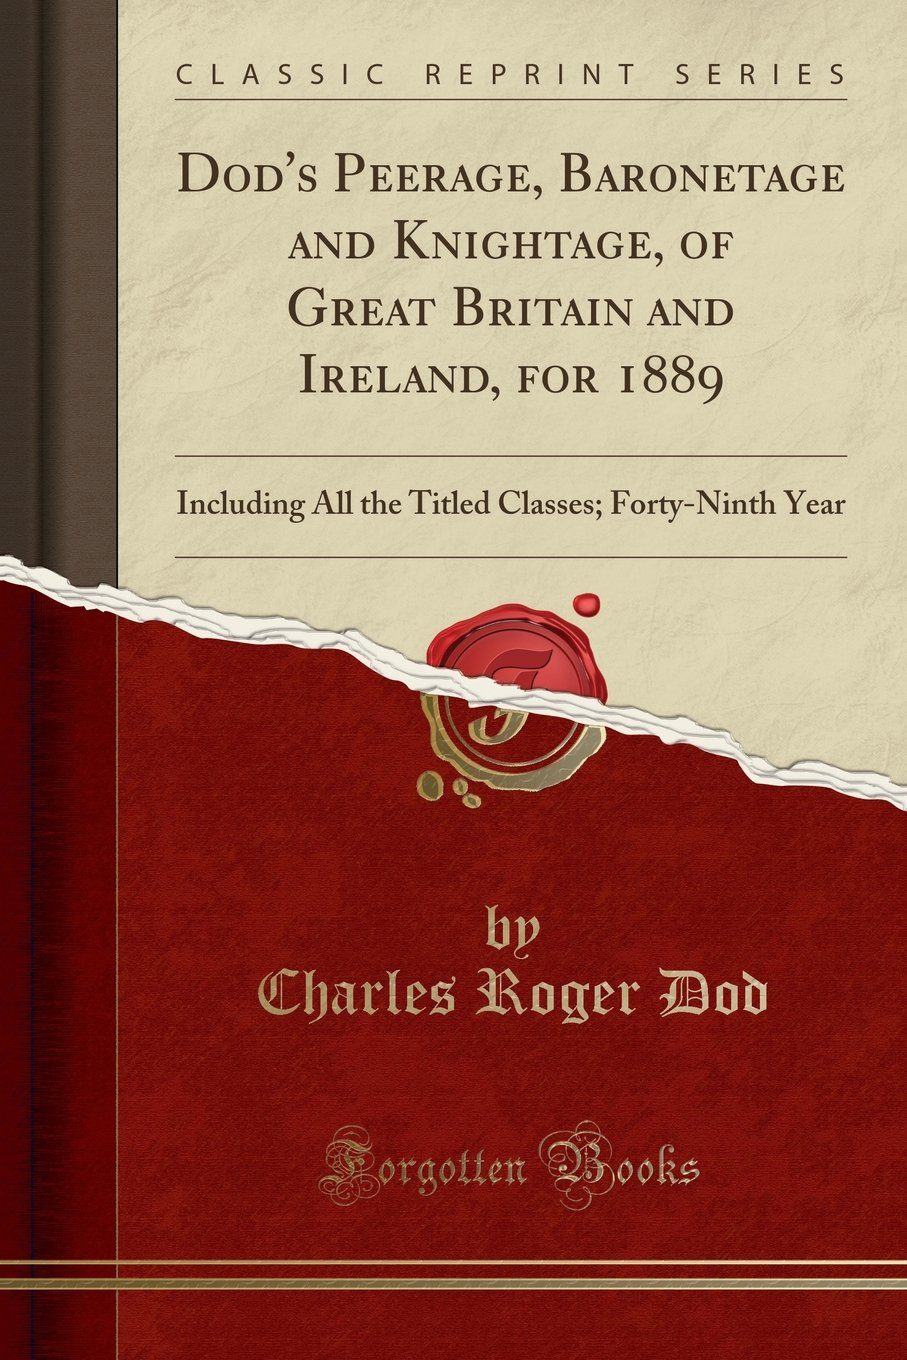 Read Online Dod's Peerage, Baronetage and Knightage, of Great Britain and Ireland, for 1889: Including All the Titled Classes; Forty-Ninth Year (Classic Reprint) PDF